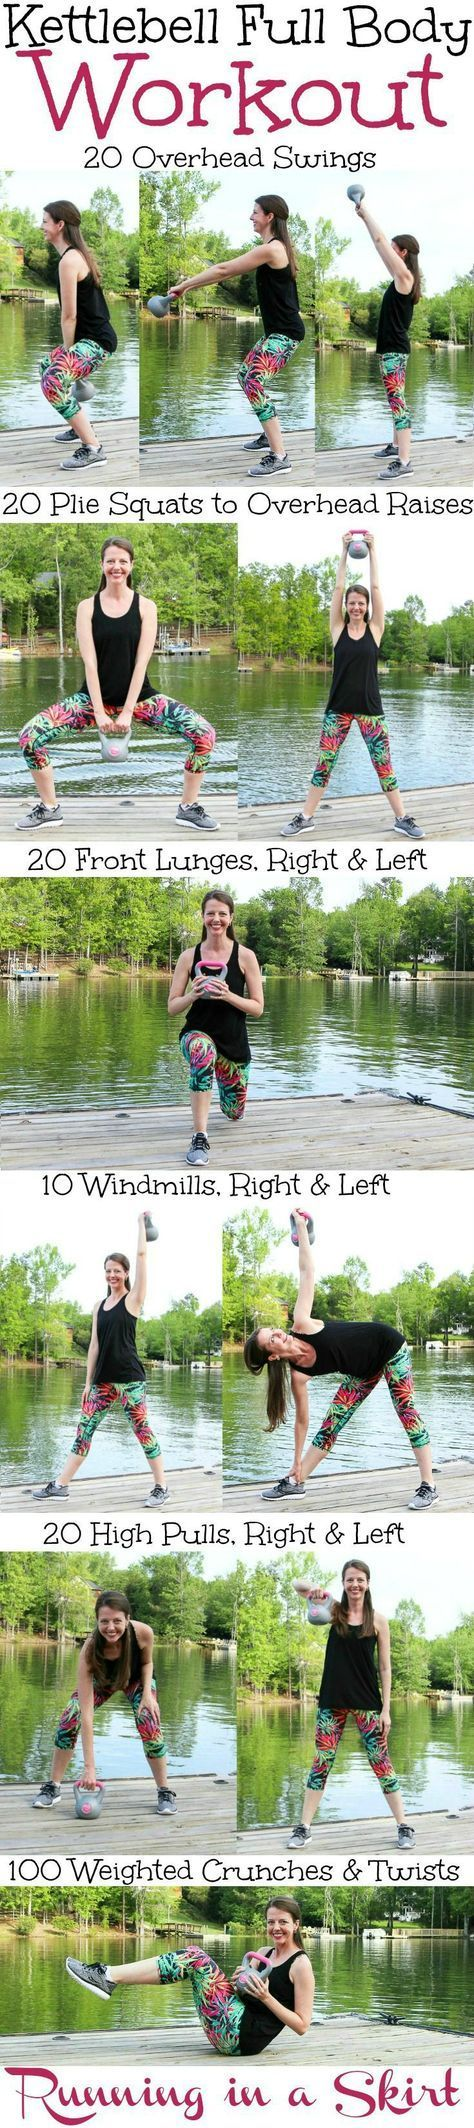 Kettlebell Full Body Workout!  A fat burning, at home routine for arms, upper body, abs, glutes and legs that gets results!  Also gets the heart rate up with cardio.  Great to tone it up with simple moves even a beginner can do.  Add more reps for advanced!  | Posted By: NewHowToLoseBellyFat.com